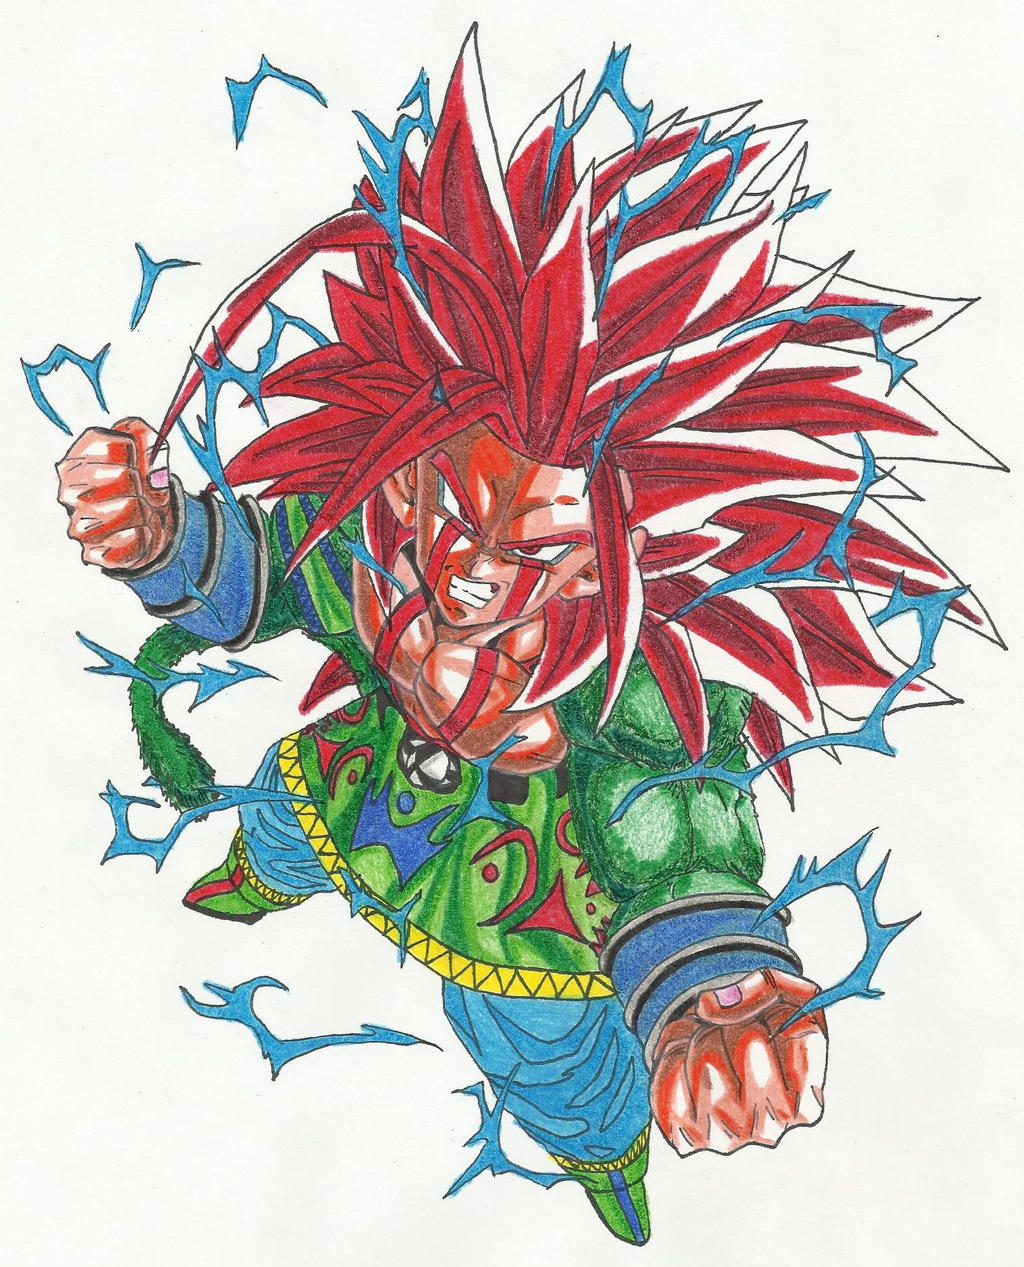 goku af super saiyan 5 dragon mode by dbz2010 on deviantart